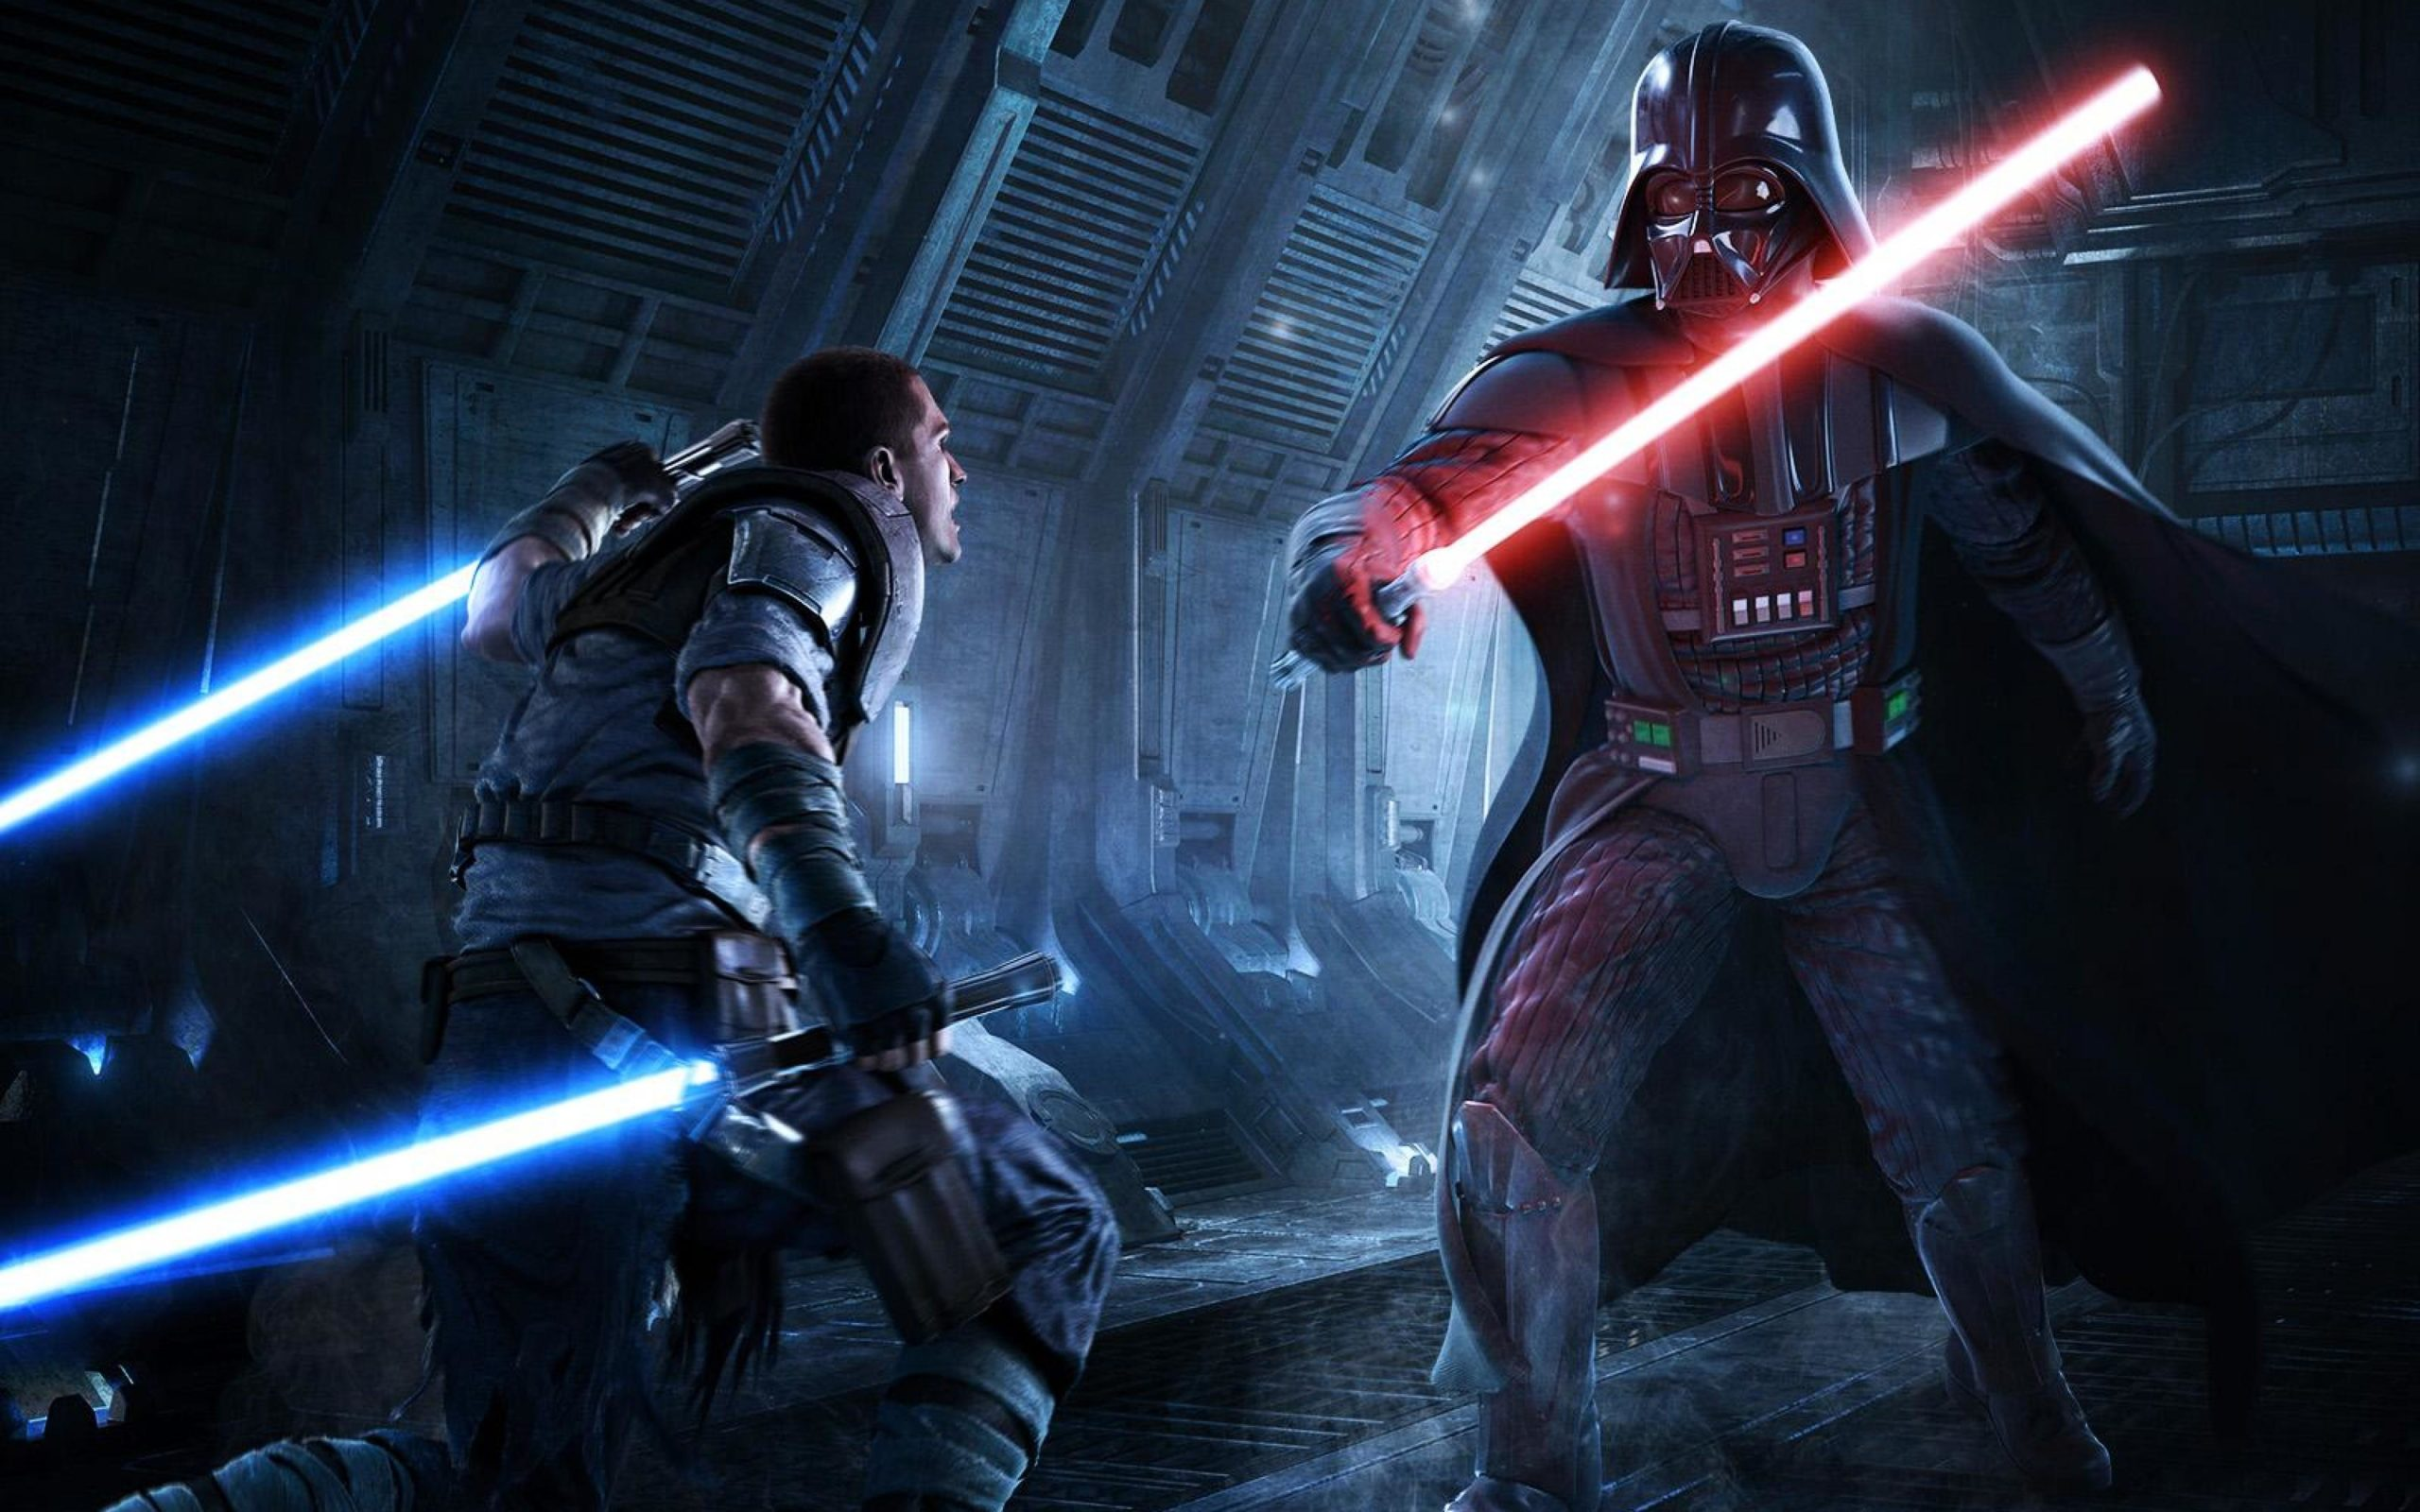 darth vader desktops photos